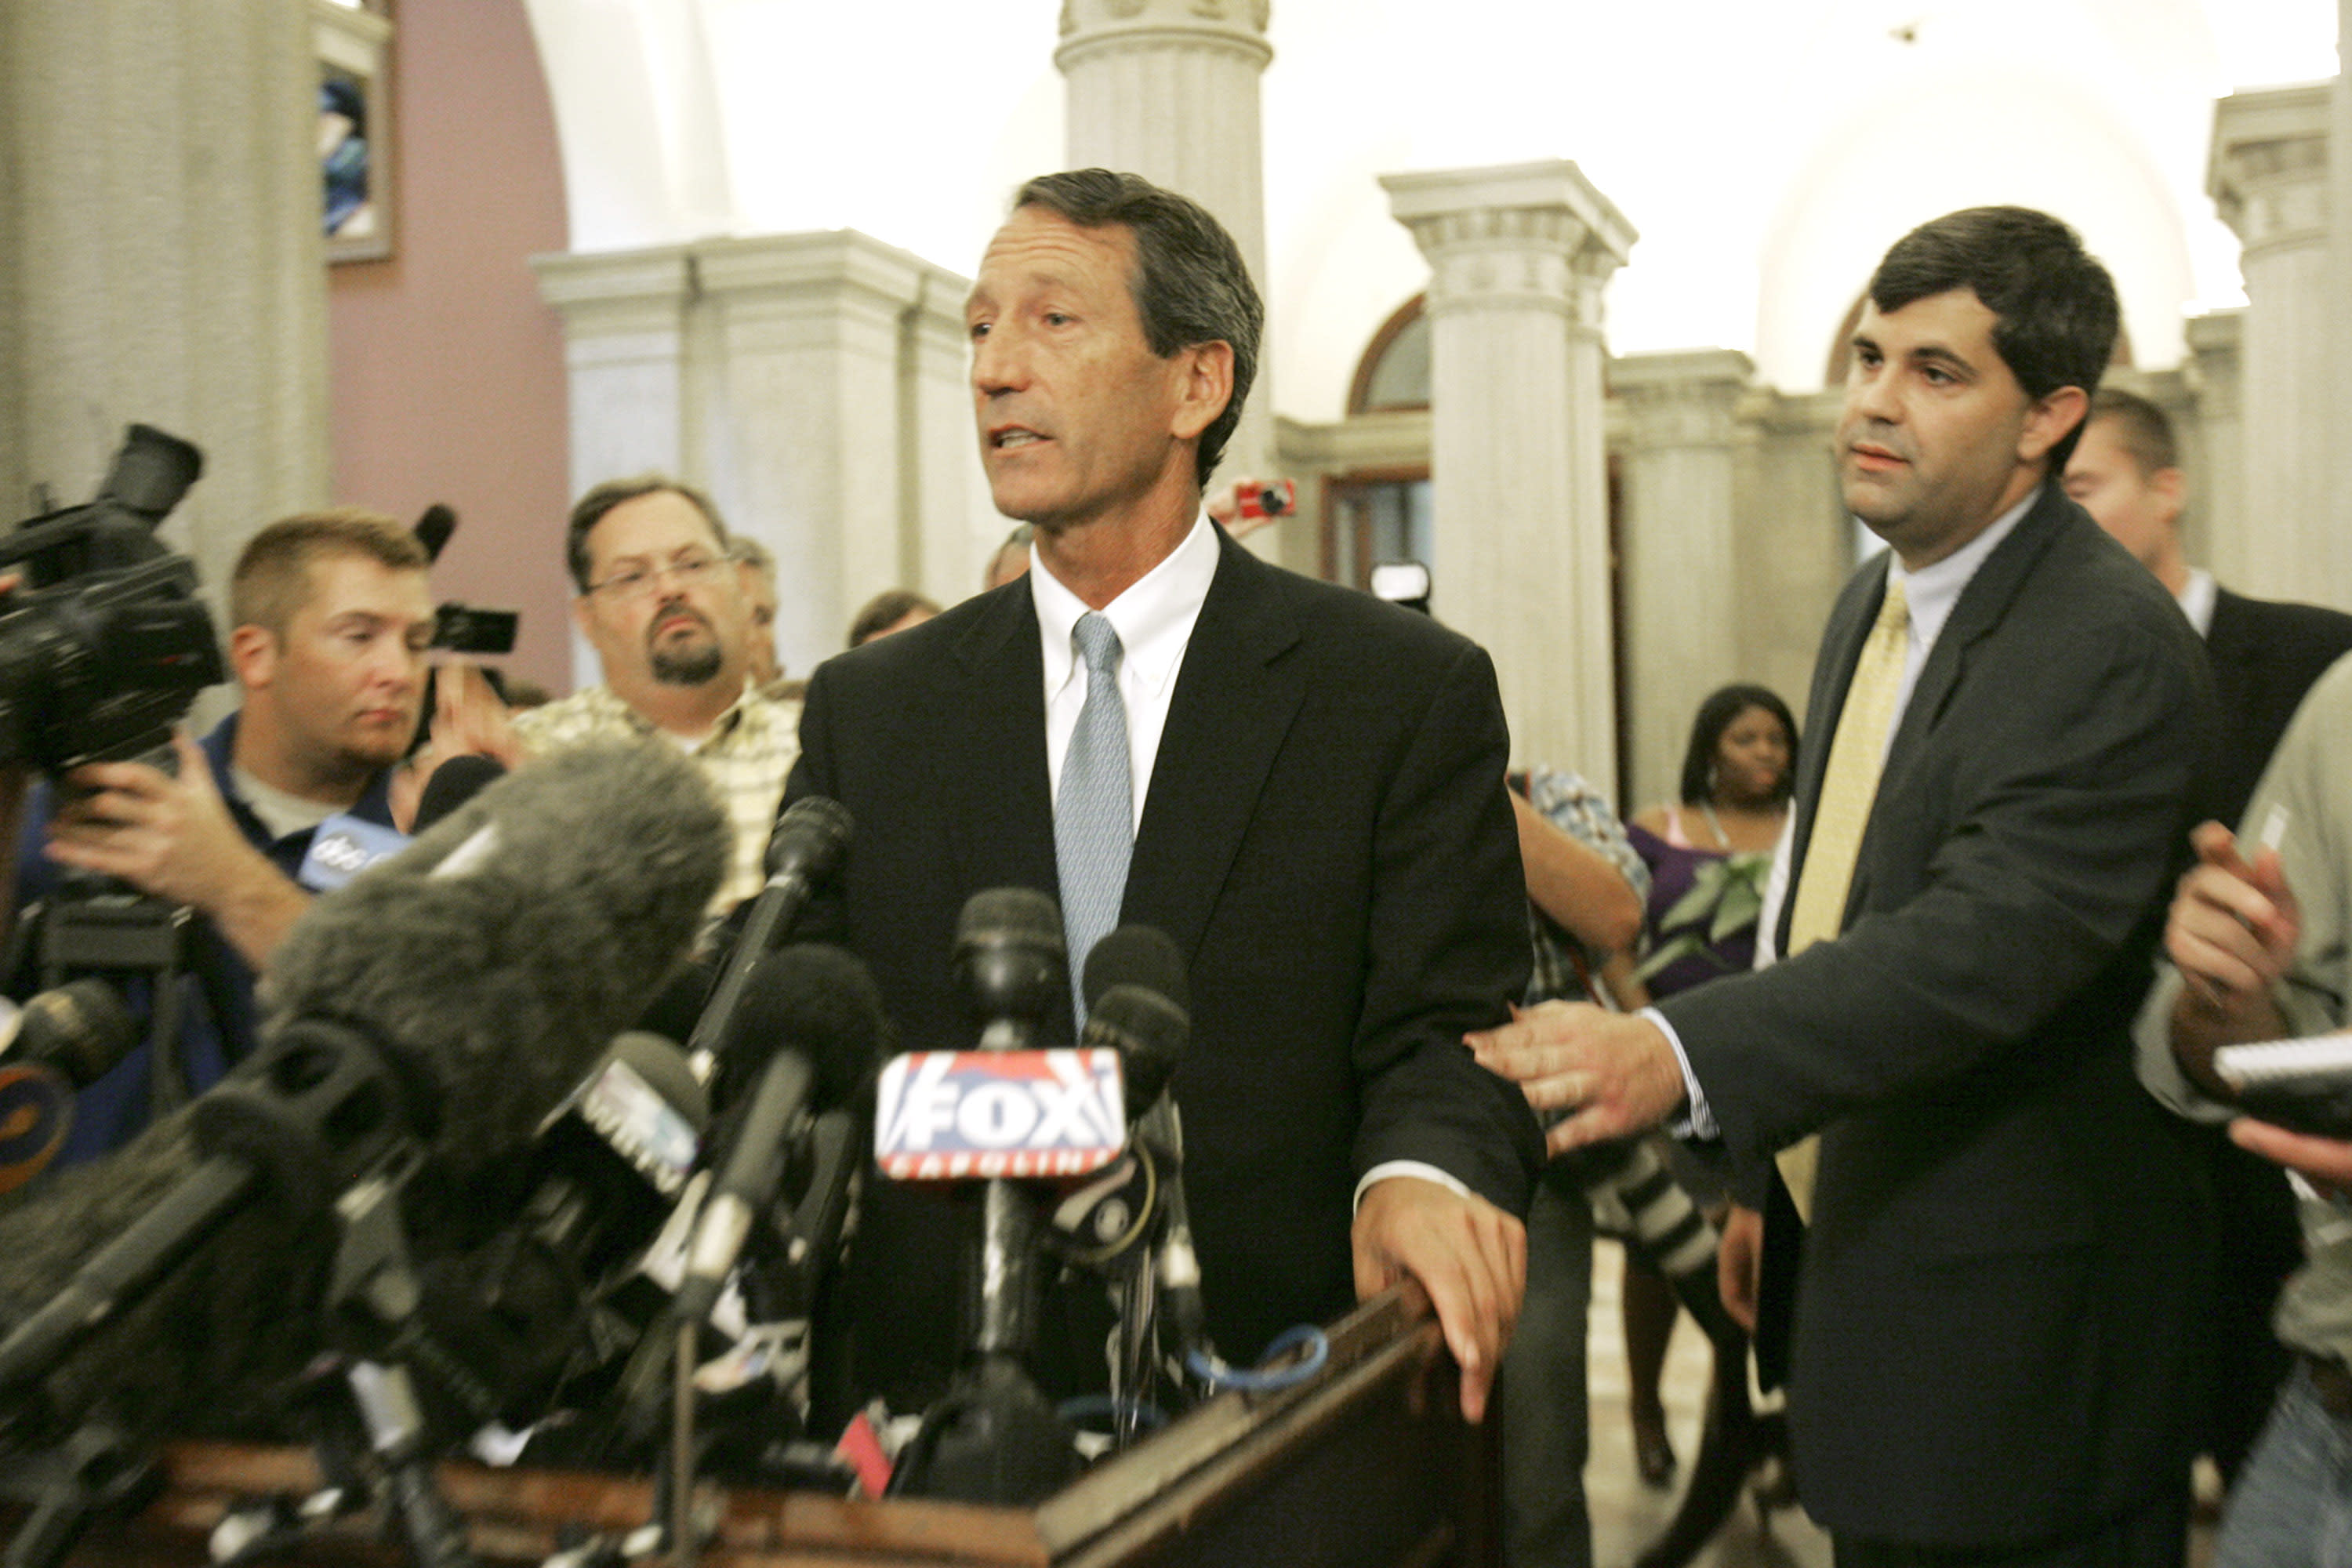 Joel Sawyer, right, grabs then South Carolina Gov. Mark Sanford's arm as he continues to answer questions after he admitted to having an affair during a news conference Wednesday, June 24, 2009, in Columbia, S.C. (AP Photo/Mary Ann Chastain)